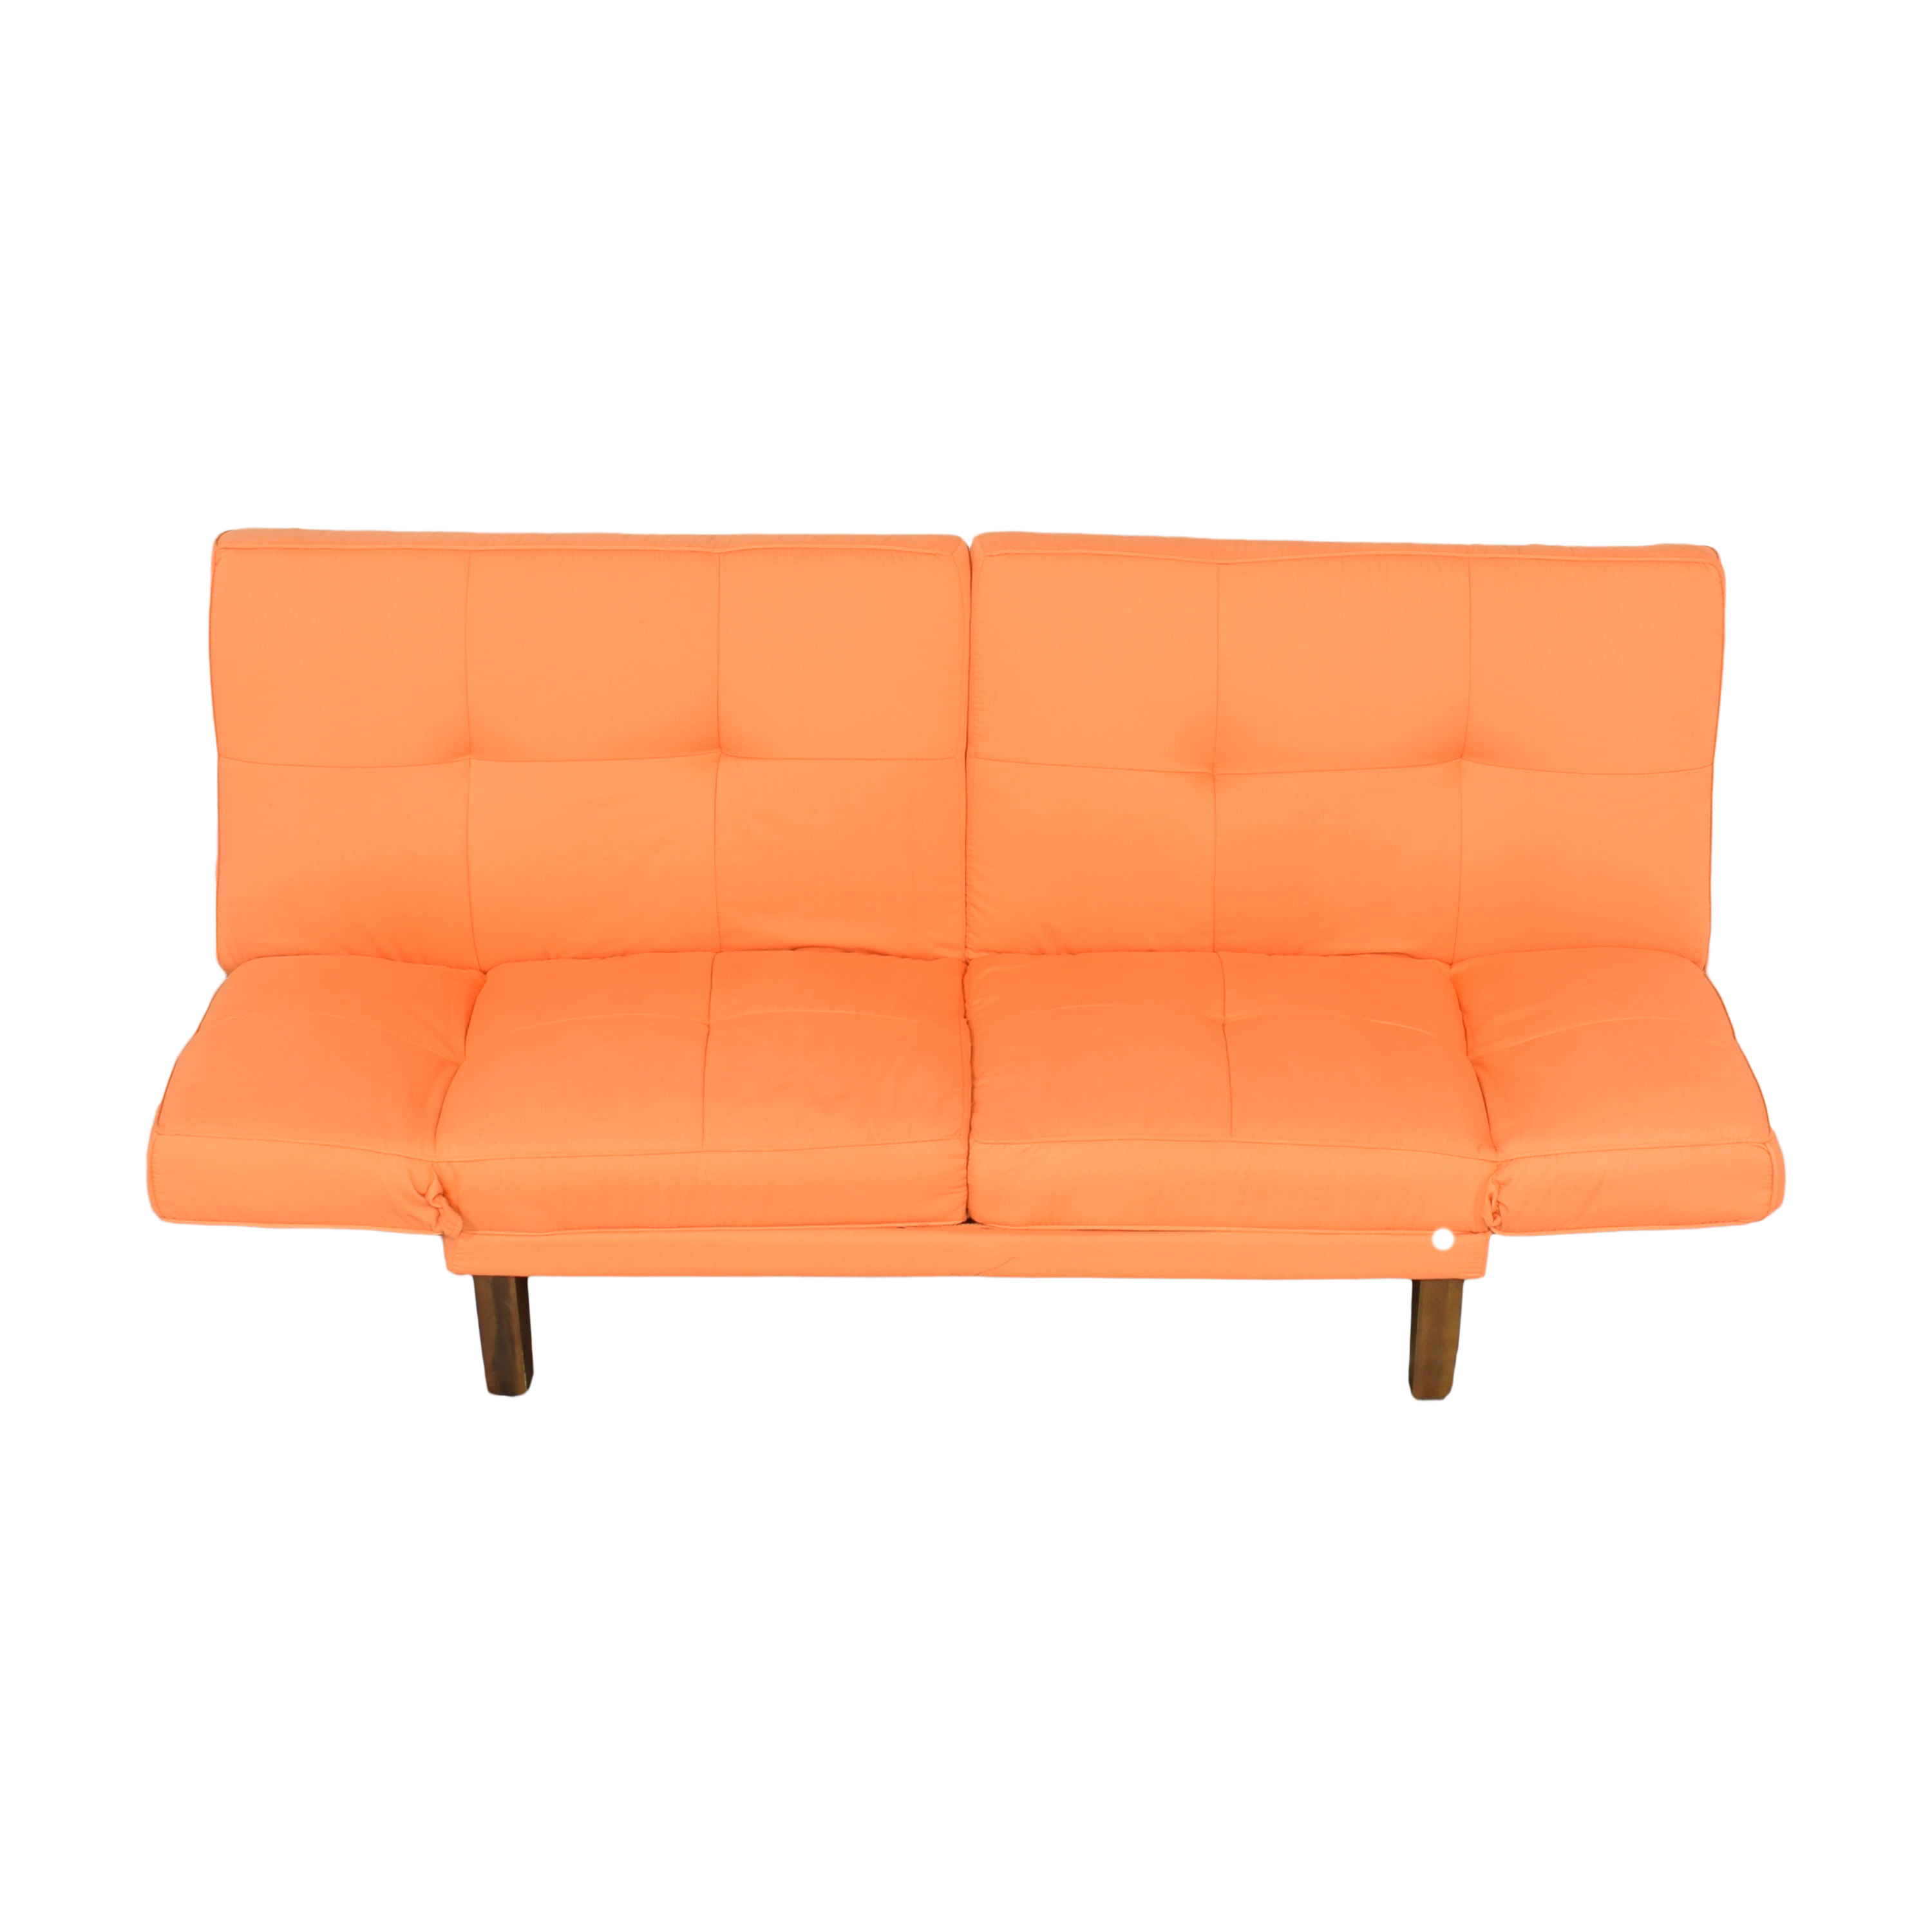 Multi Position Futon with Adjustable Arms